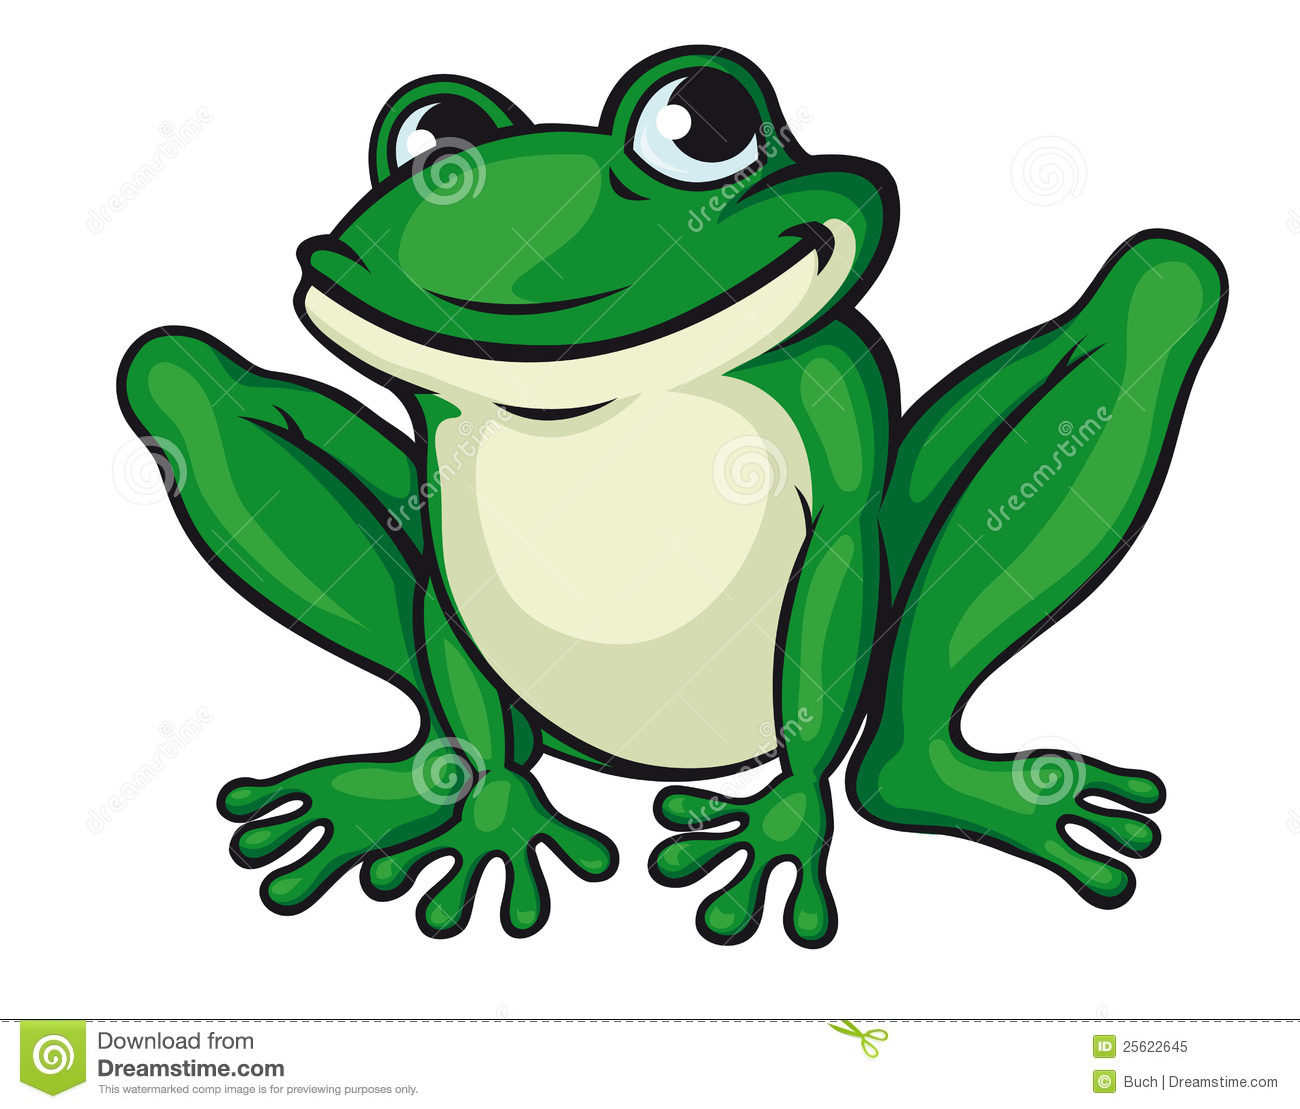 Big Green Frog Royalty Free Stock Photo Image 25622645